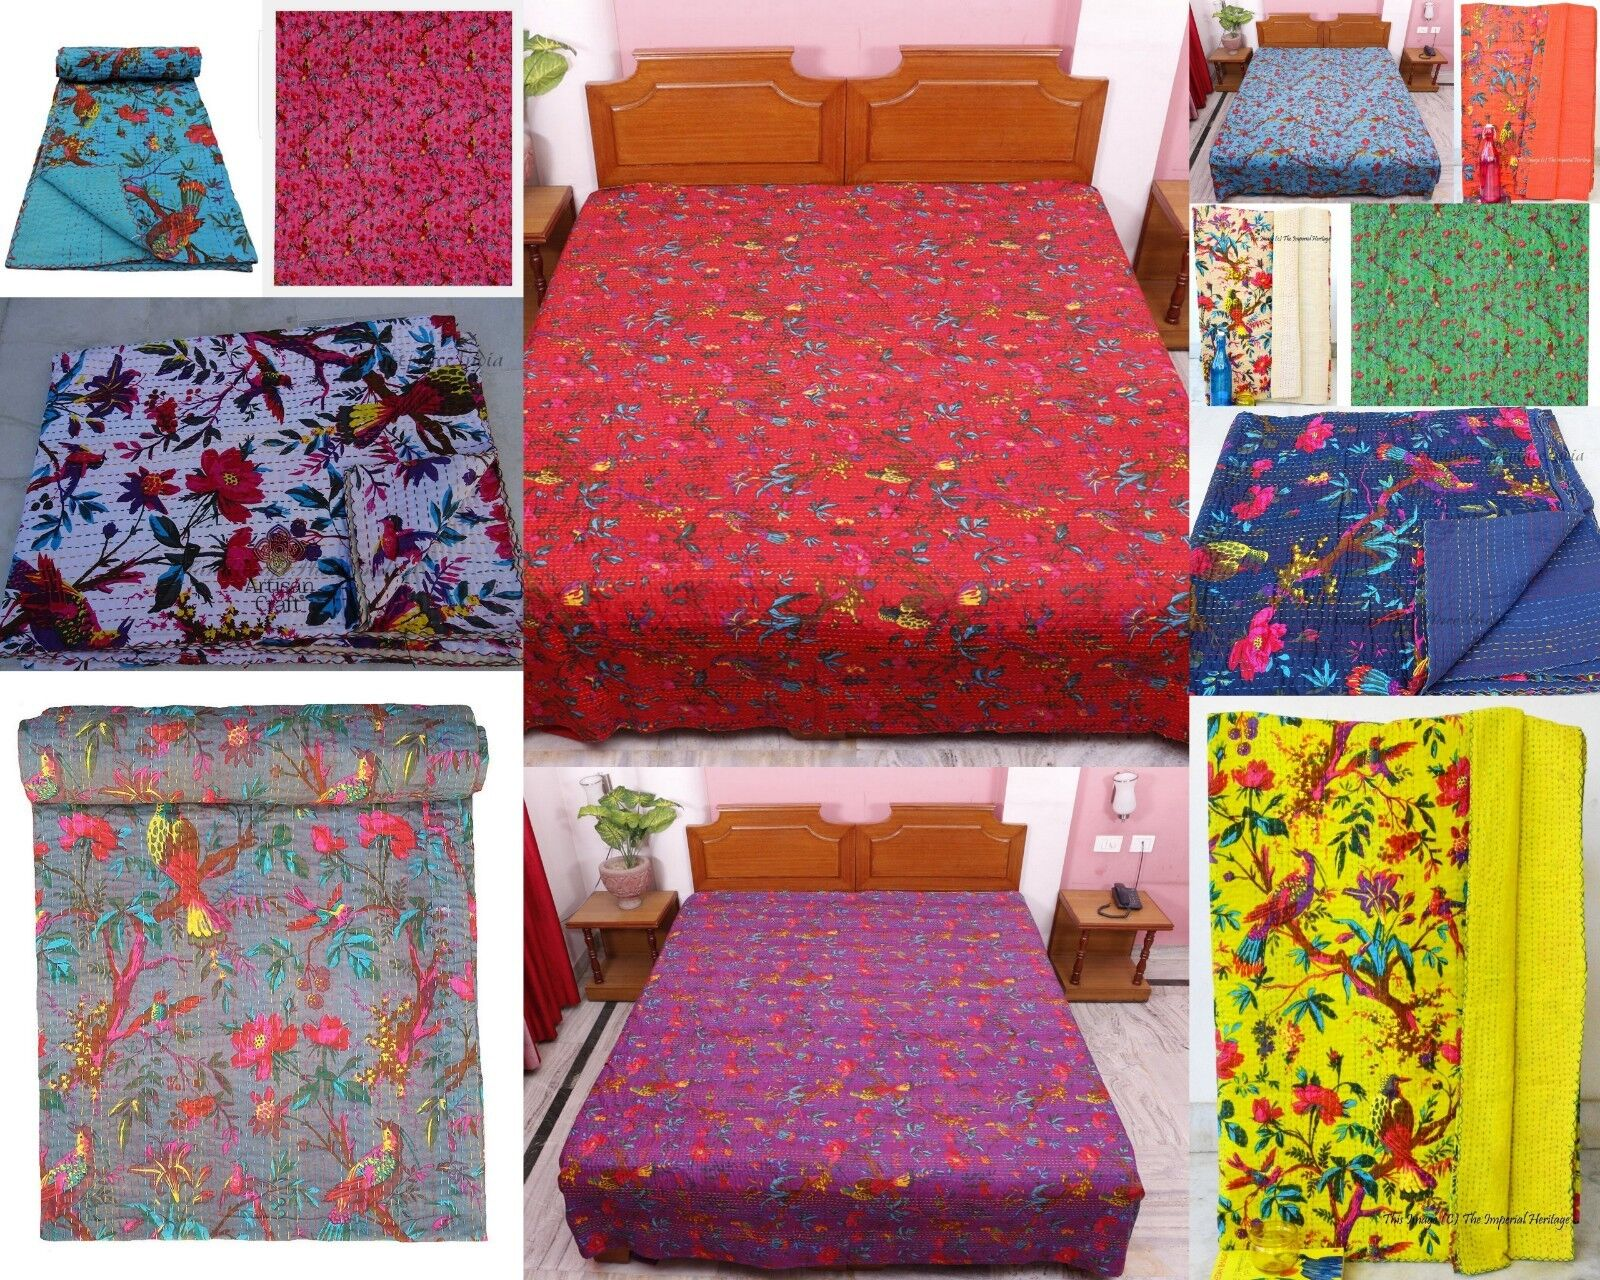 Indian Blanket Quilt New Handmade Bird Kantha Twin Christmas gift Bed Cover